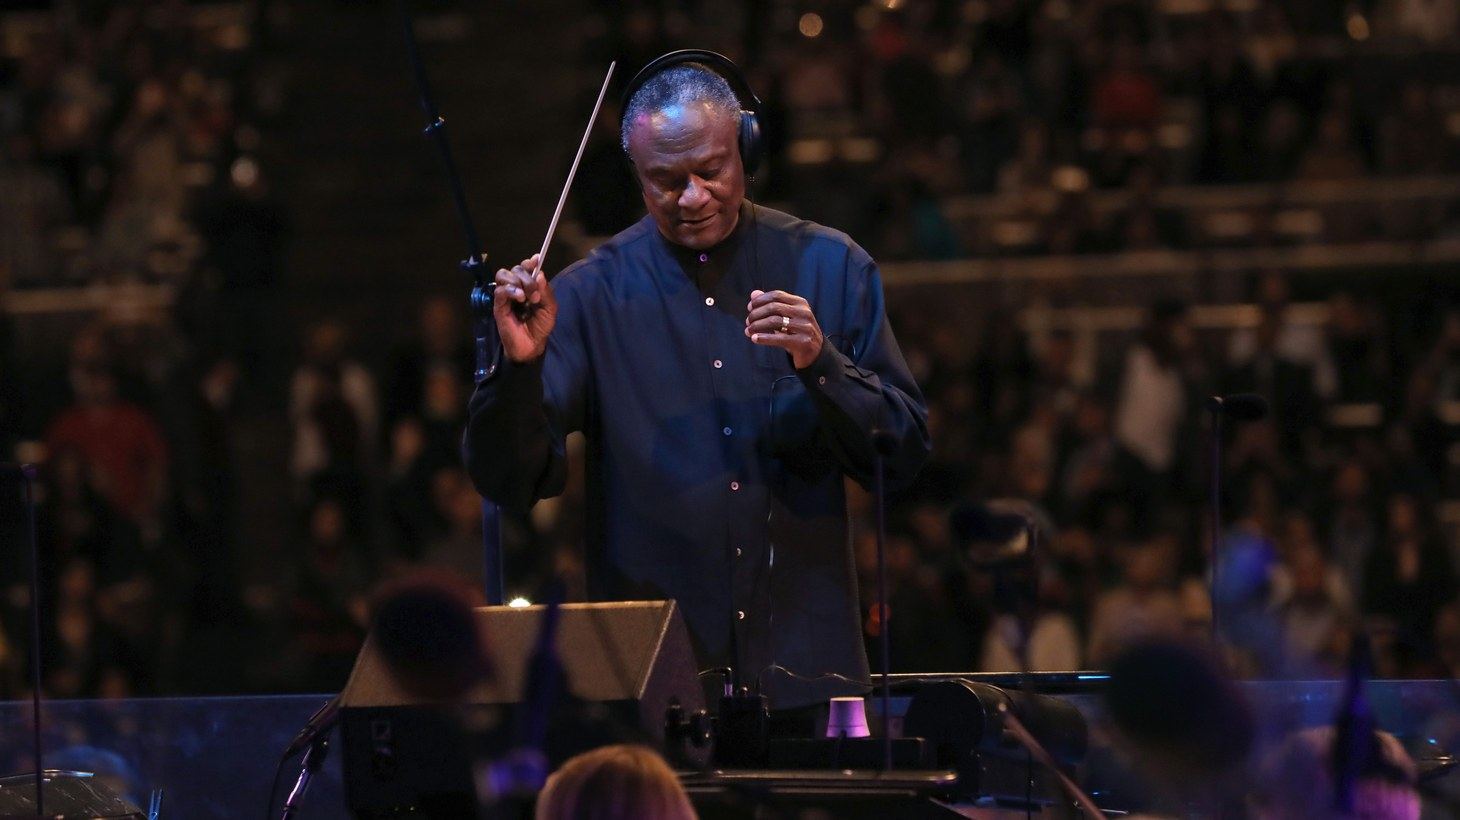 Thomas Wilkins on opening night at the Hollywood Bowl 2019.